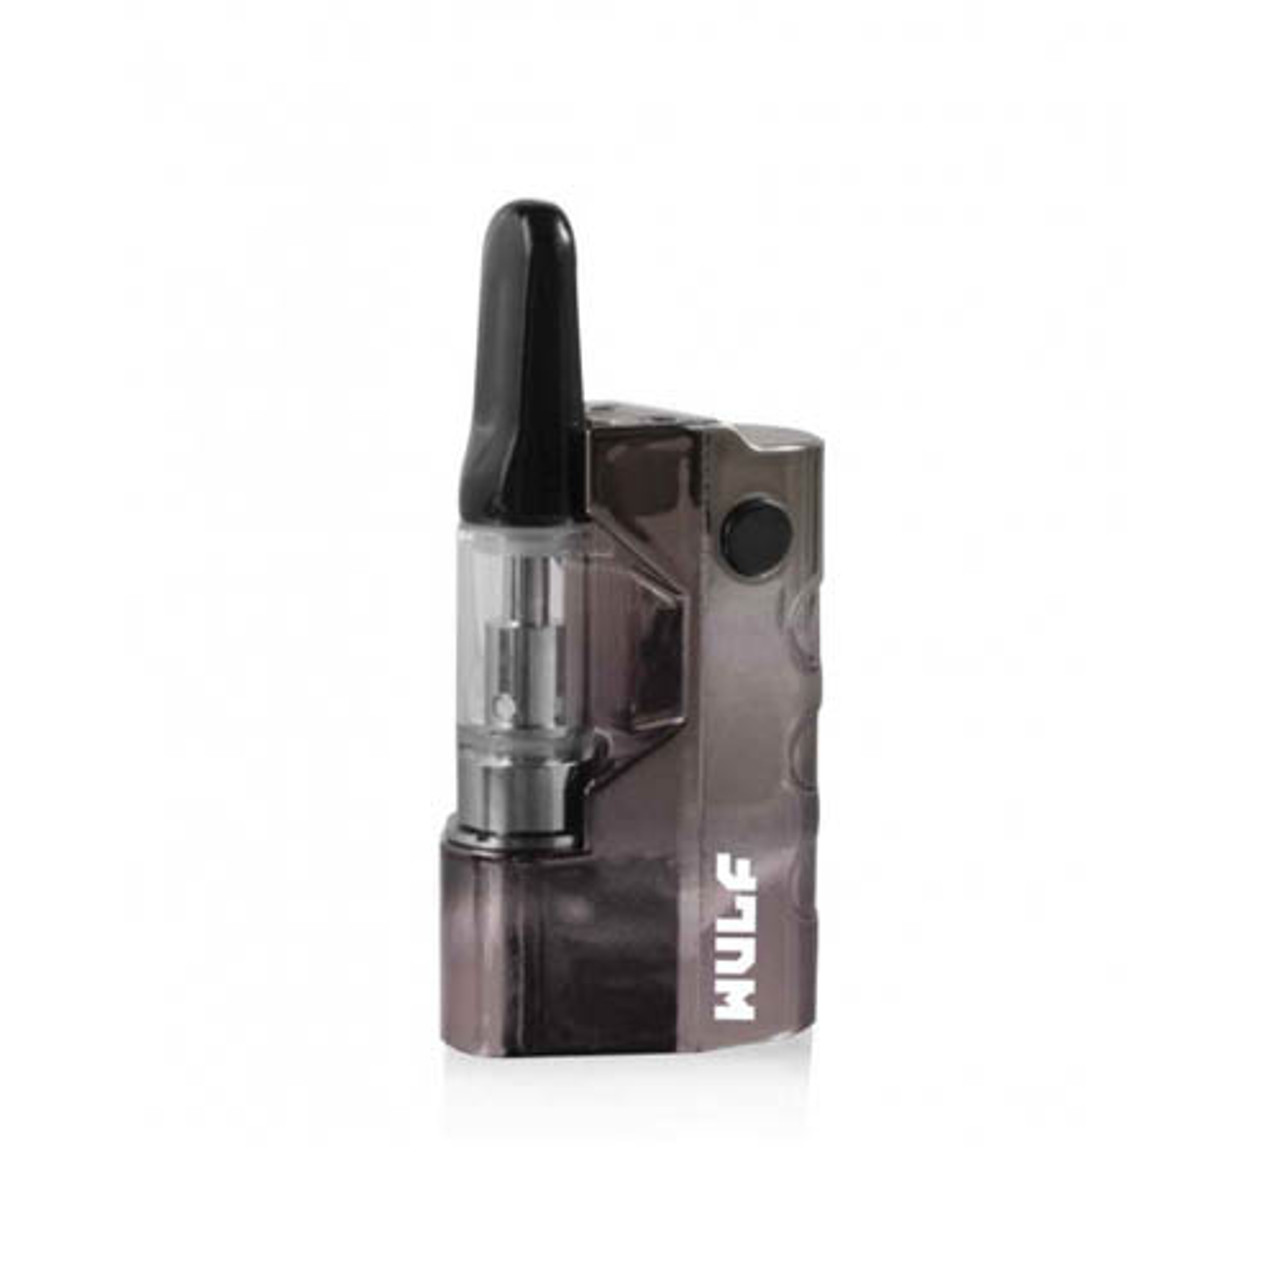 Wulf Micro Plus Cartridge Vaporizer